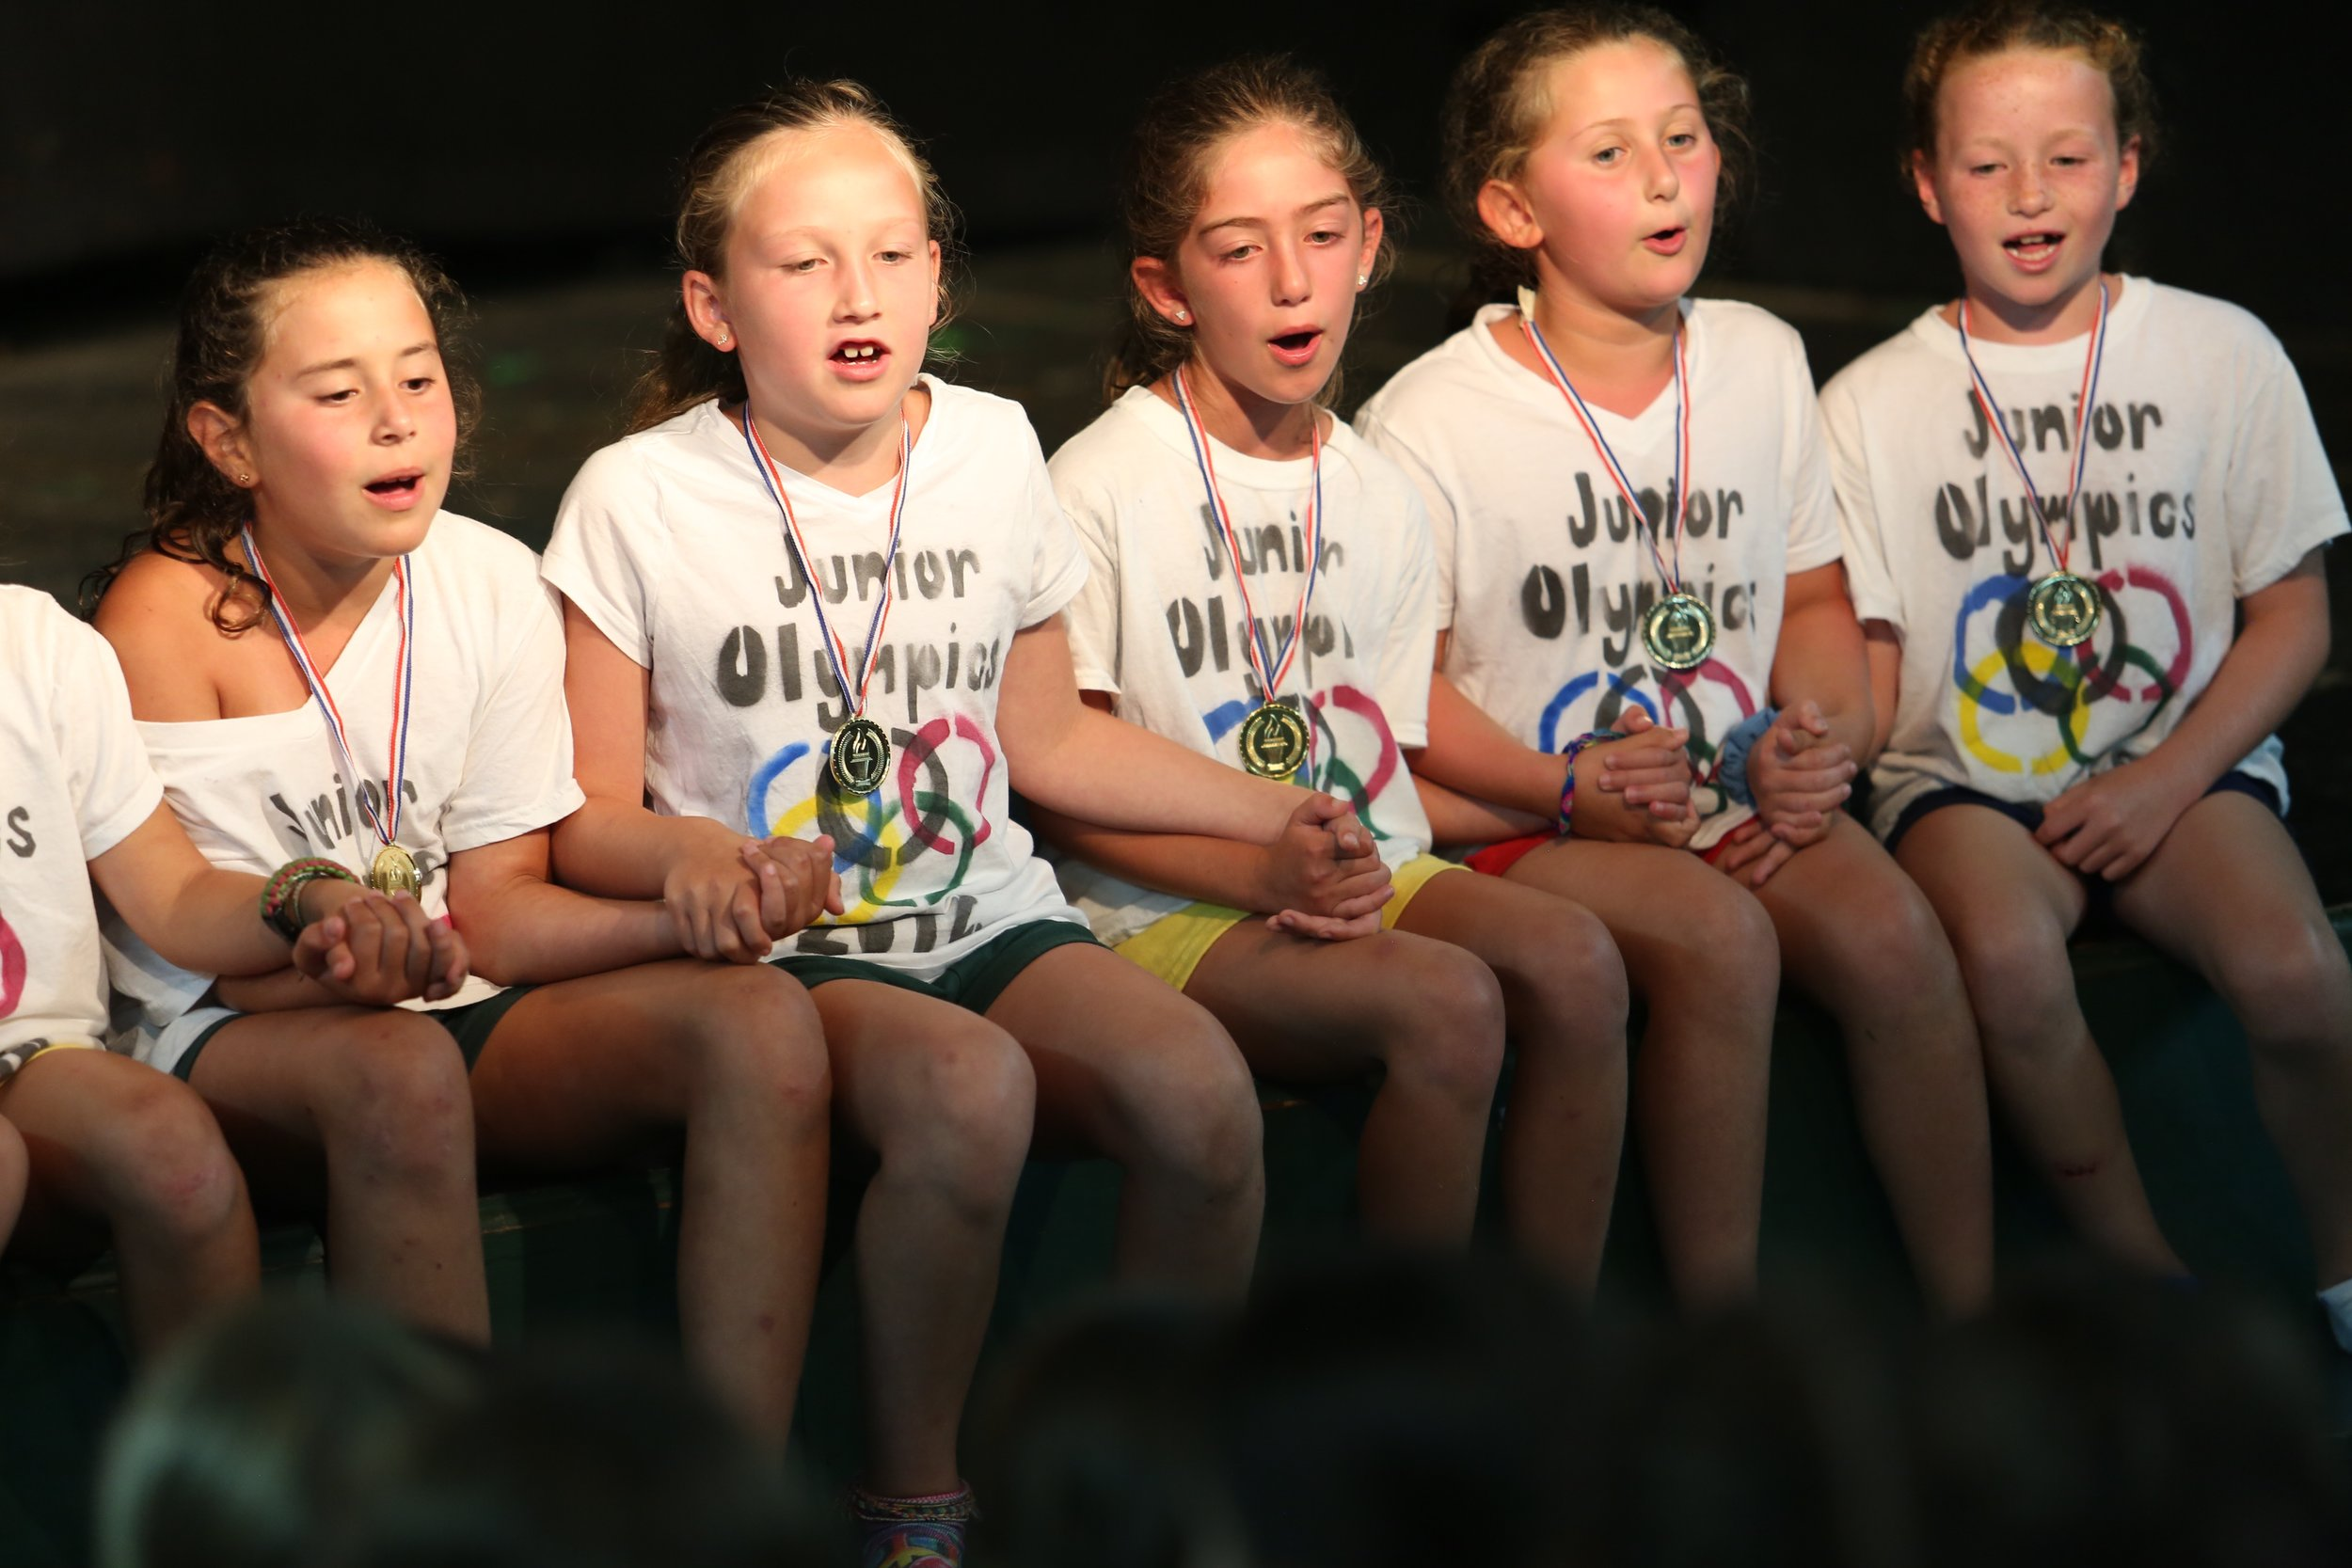 The Junior girls during Divisional Sing.